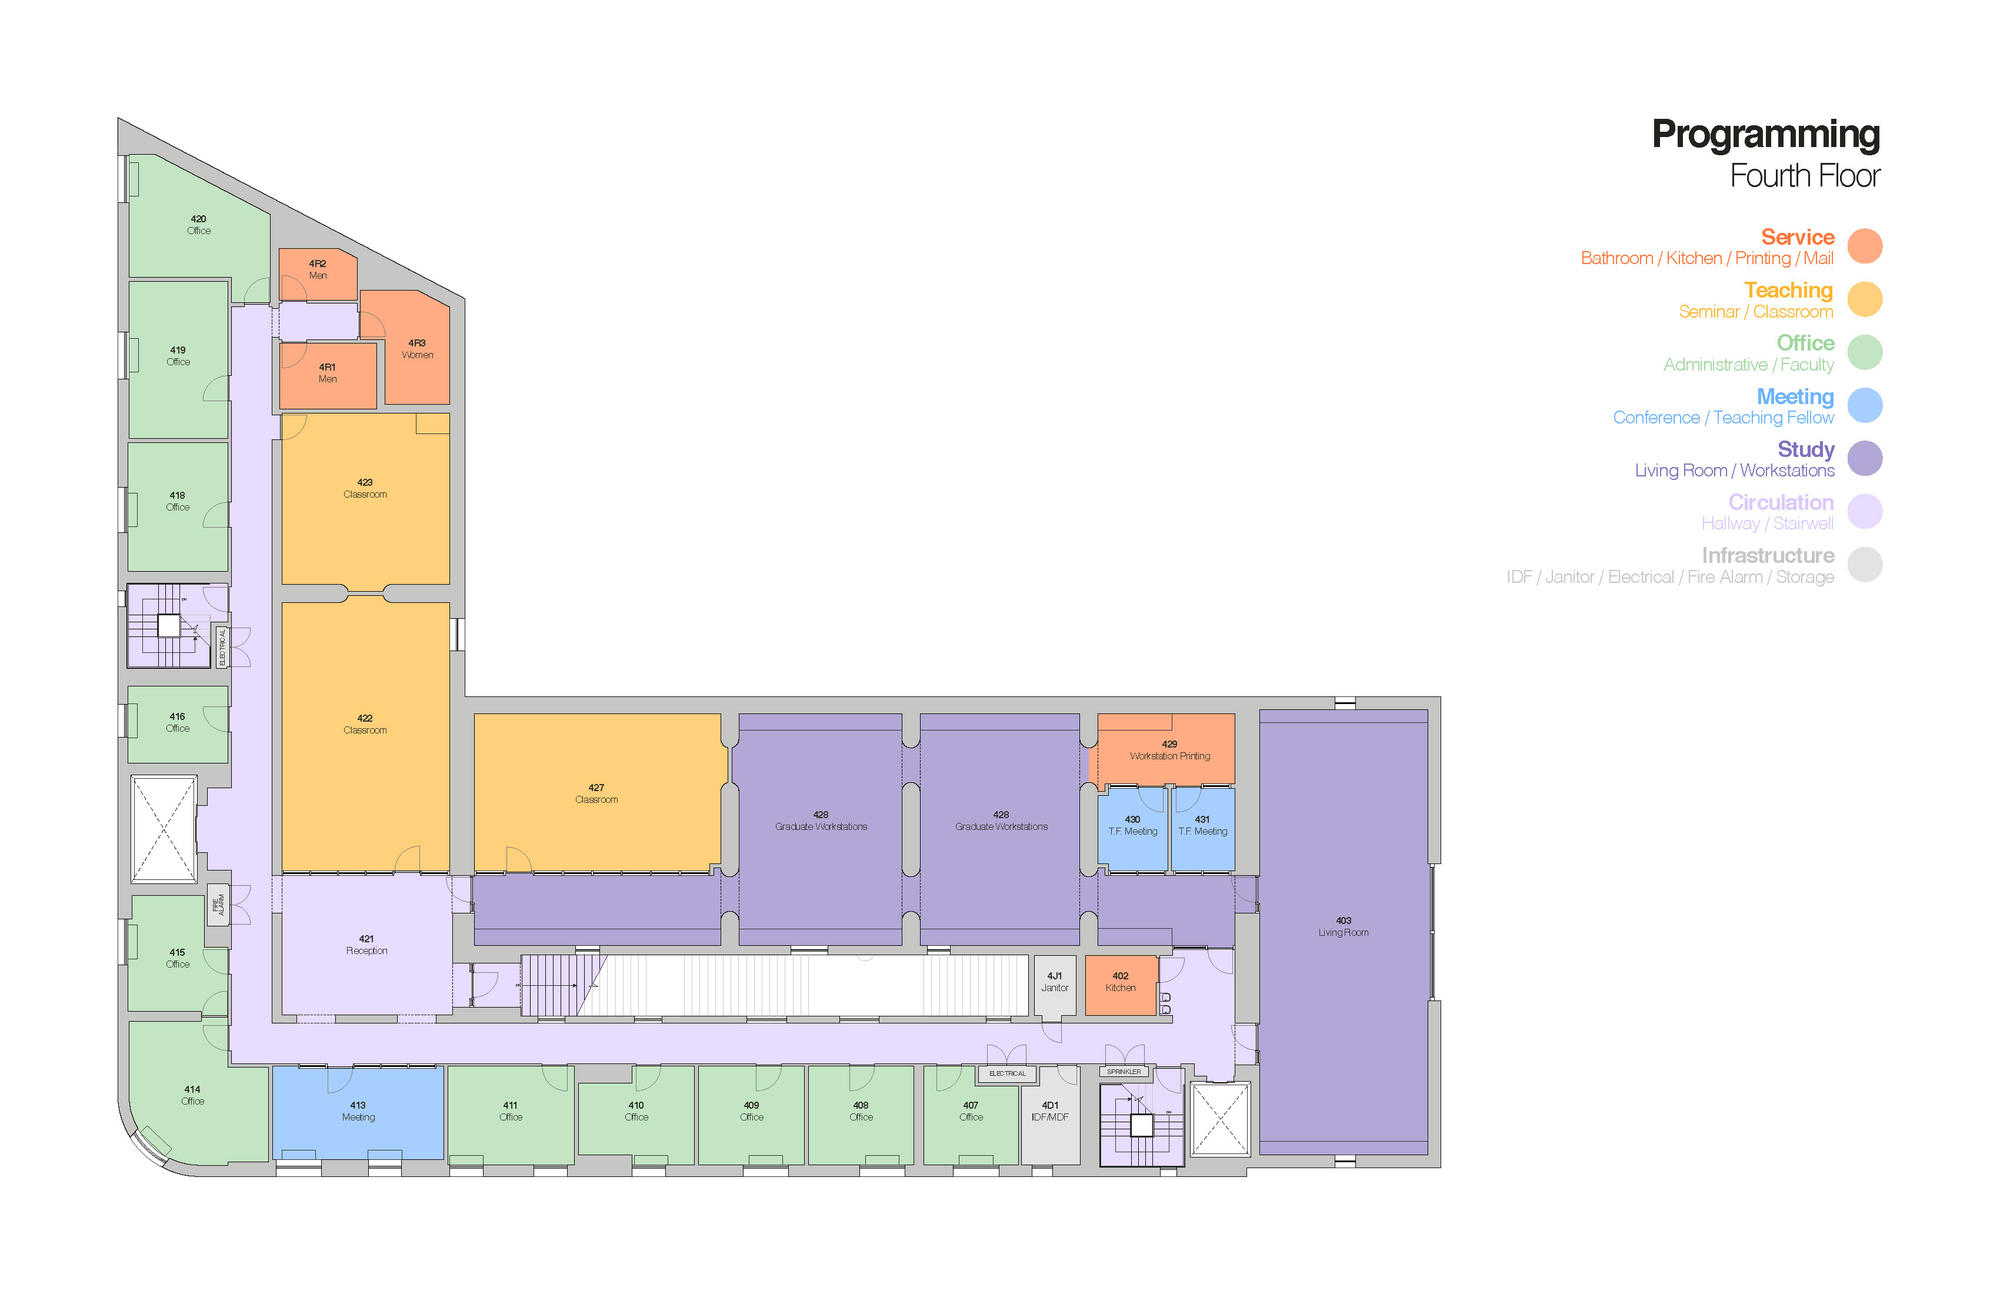 sackler_floorplan_4th